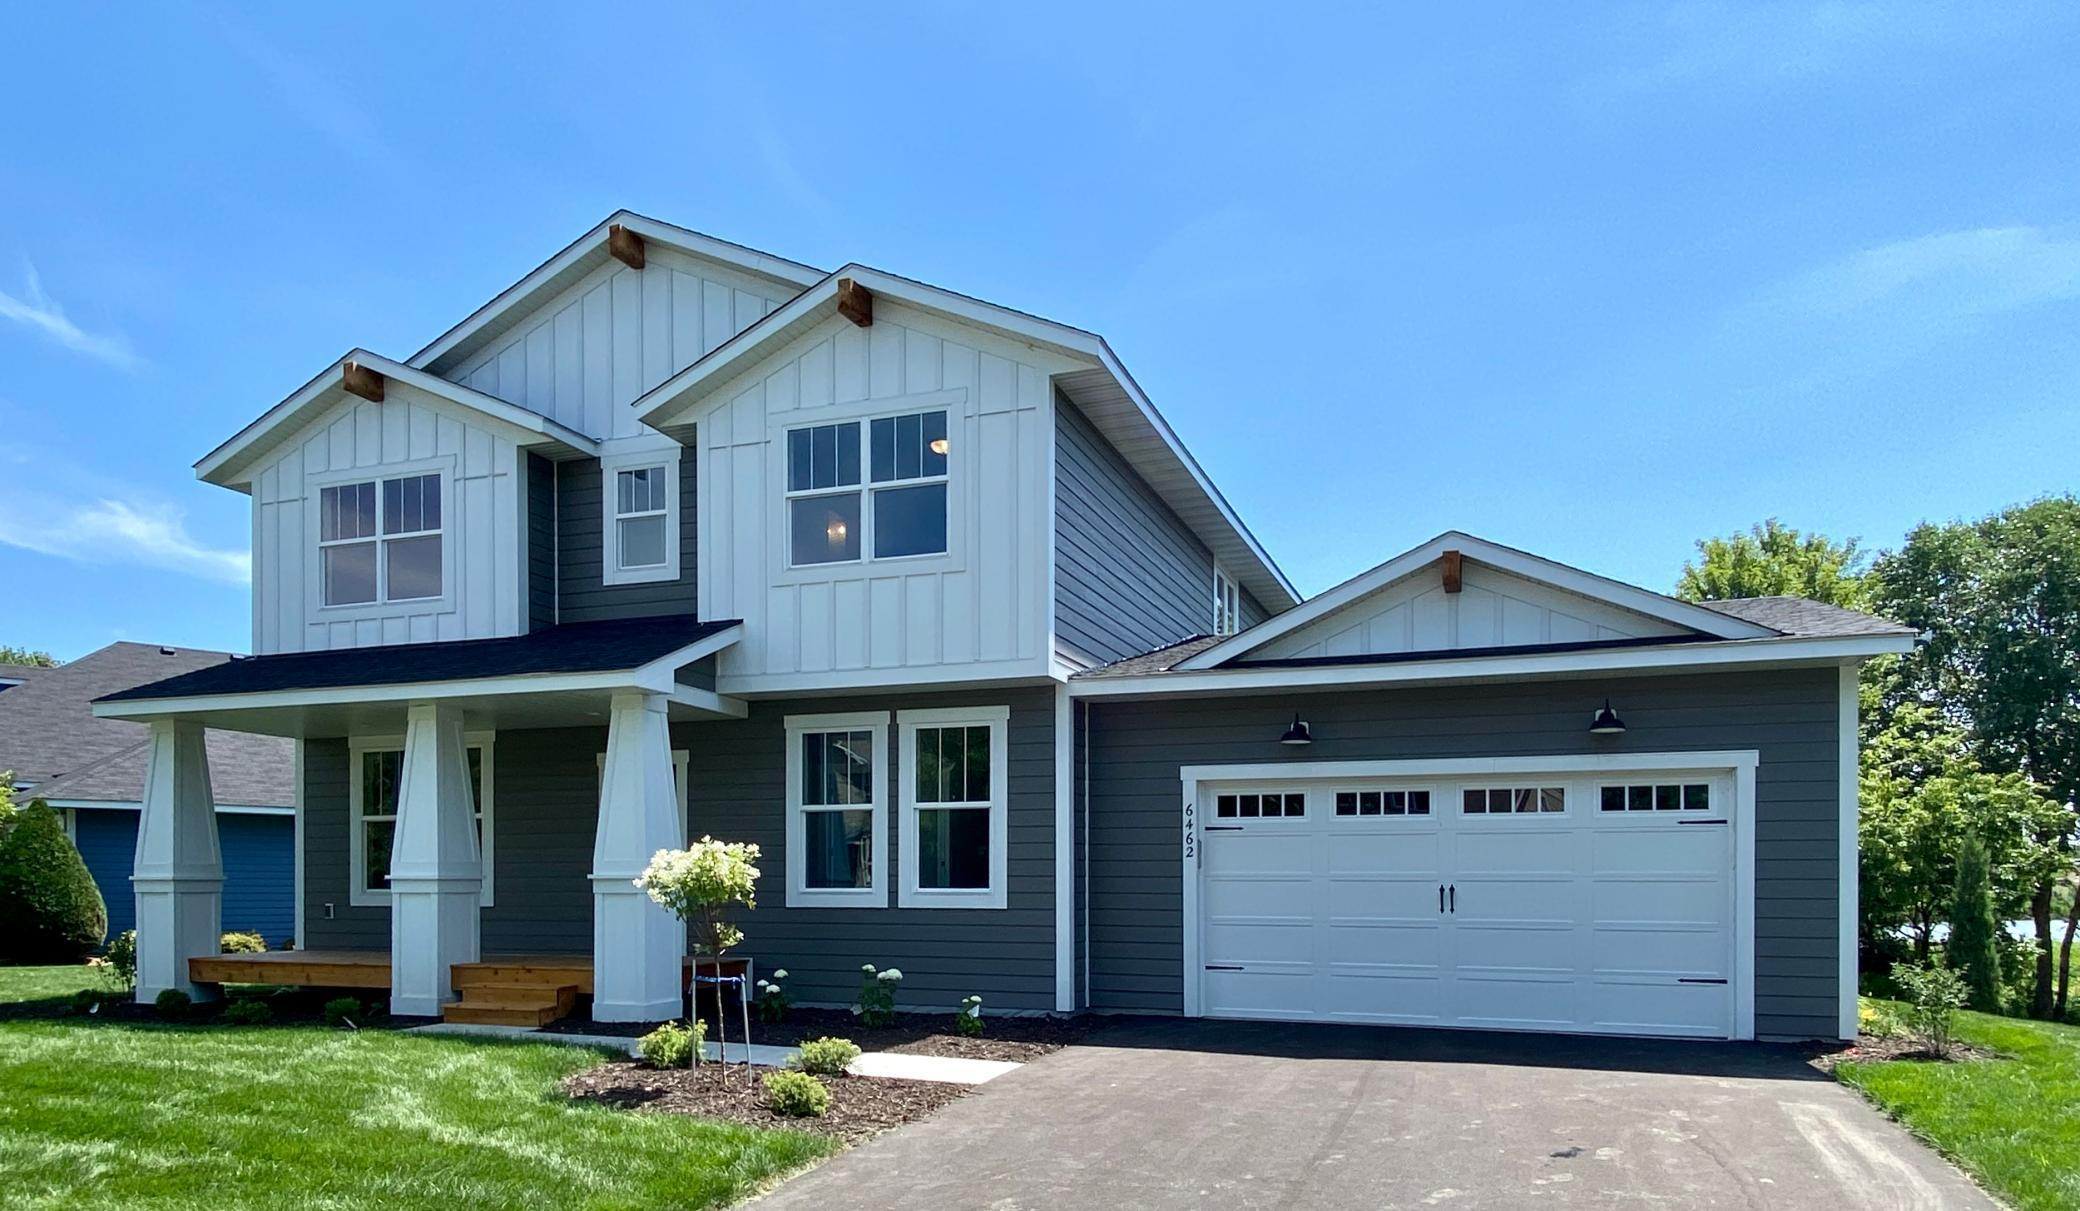 6462 E Laketowne Drive NE Property Photo - Albertville, MN real estate listing